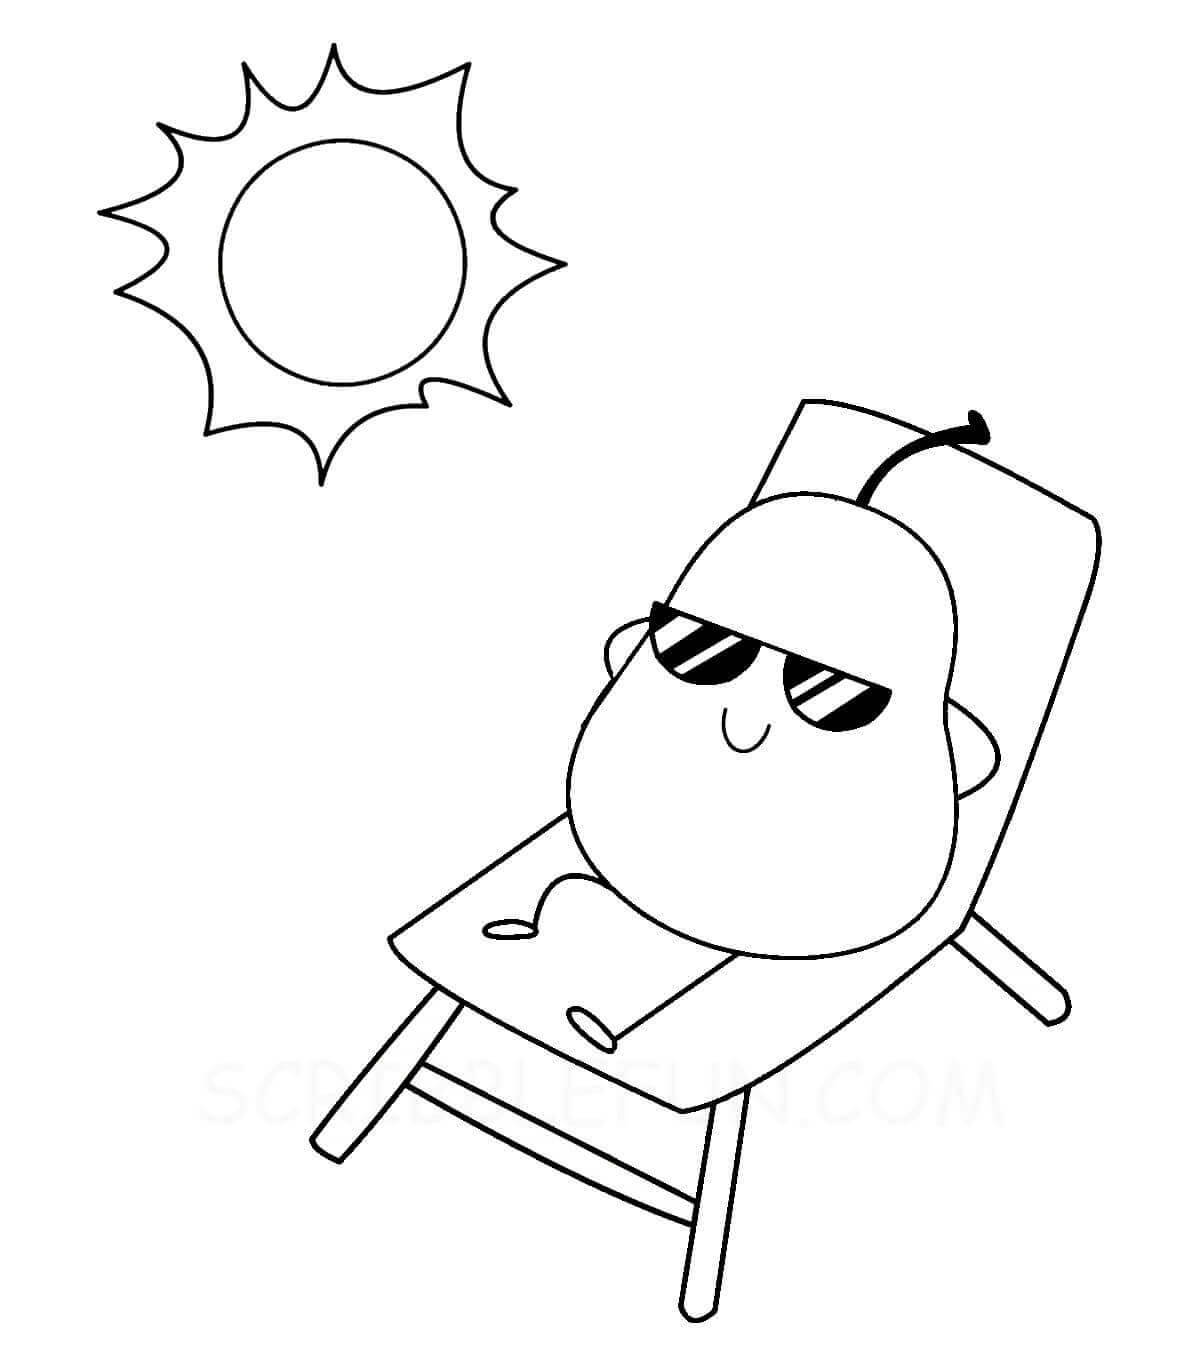 Pear and sun coloring page